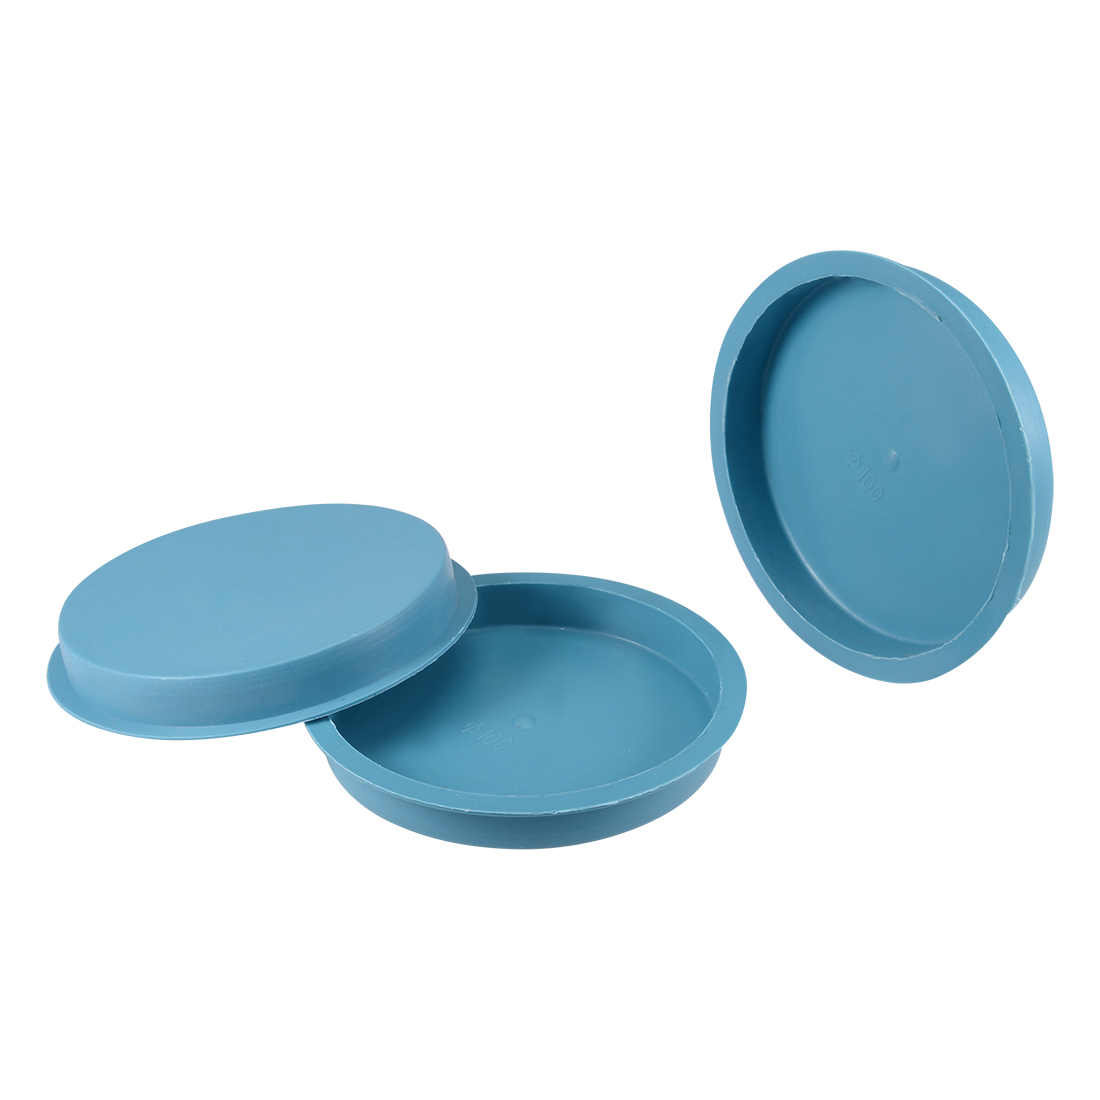 10pcs PE 100mm x 15mm Round Head Hole Stoppers Waterproof Tapered Caps Blue